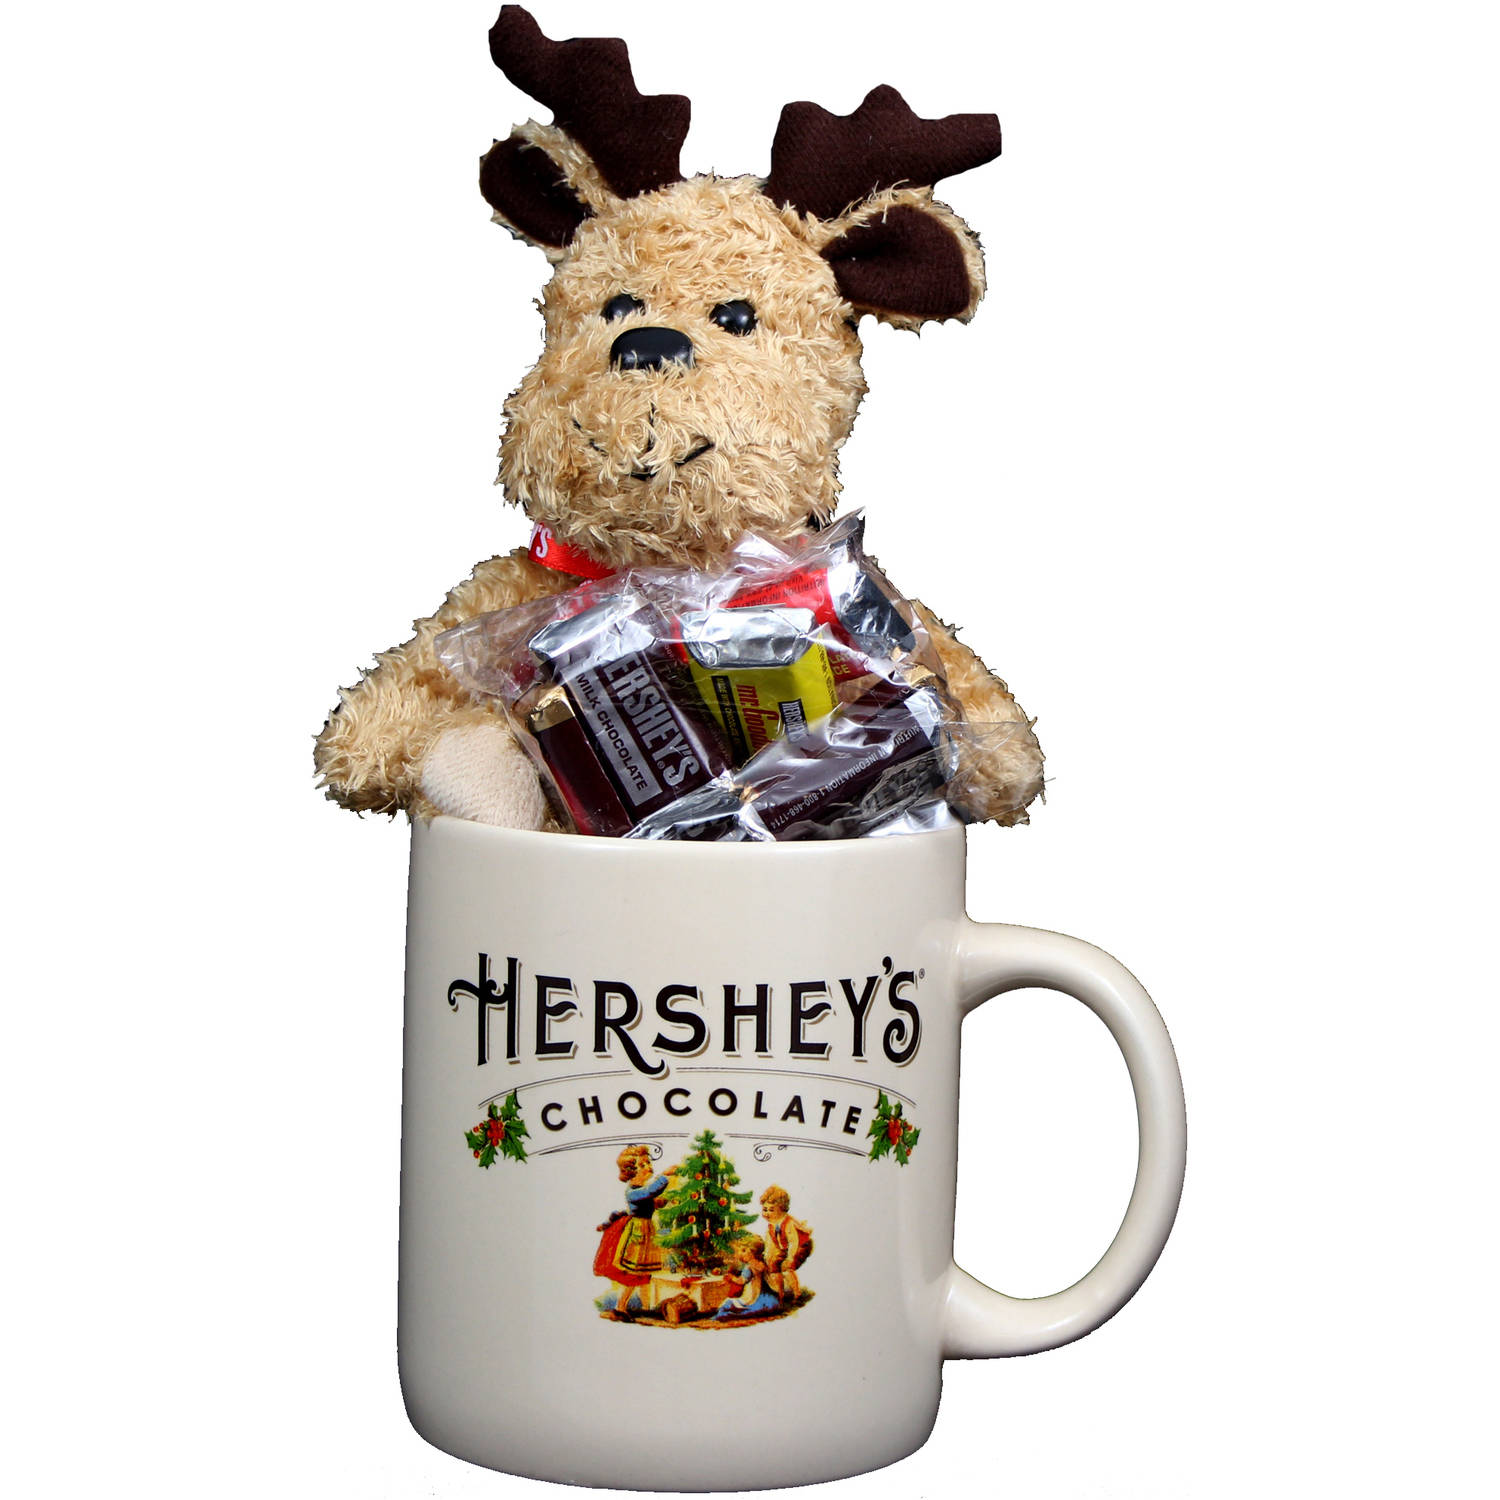 Galerie Hershey's Cream Jumbo Mug with Milk Chocolate Candy and Plush